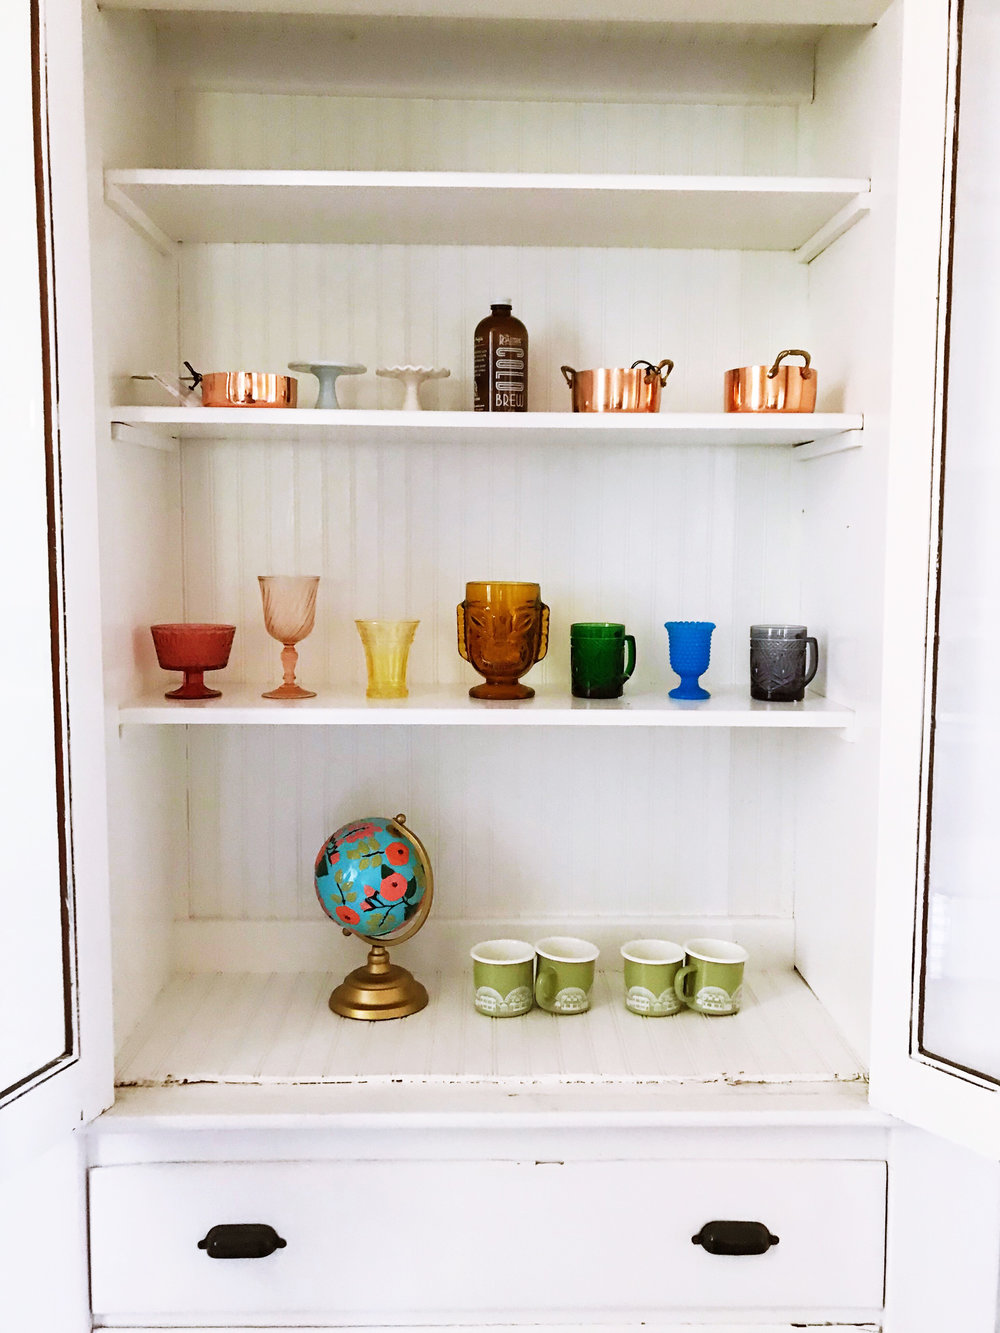 Built-in china cabinet with rainbow depression glass | Freckle & fair